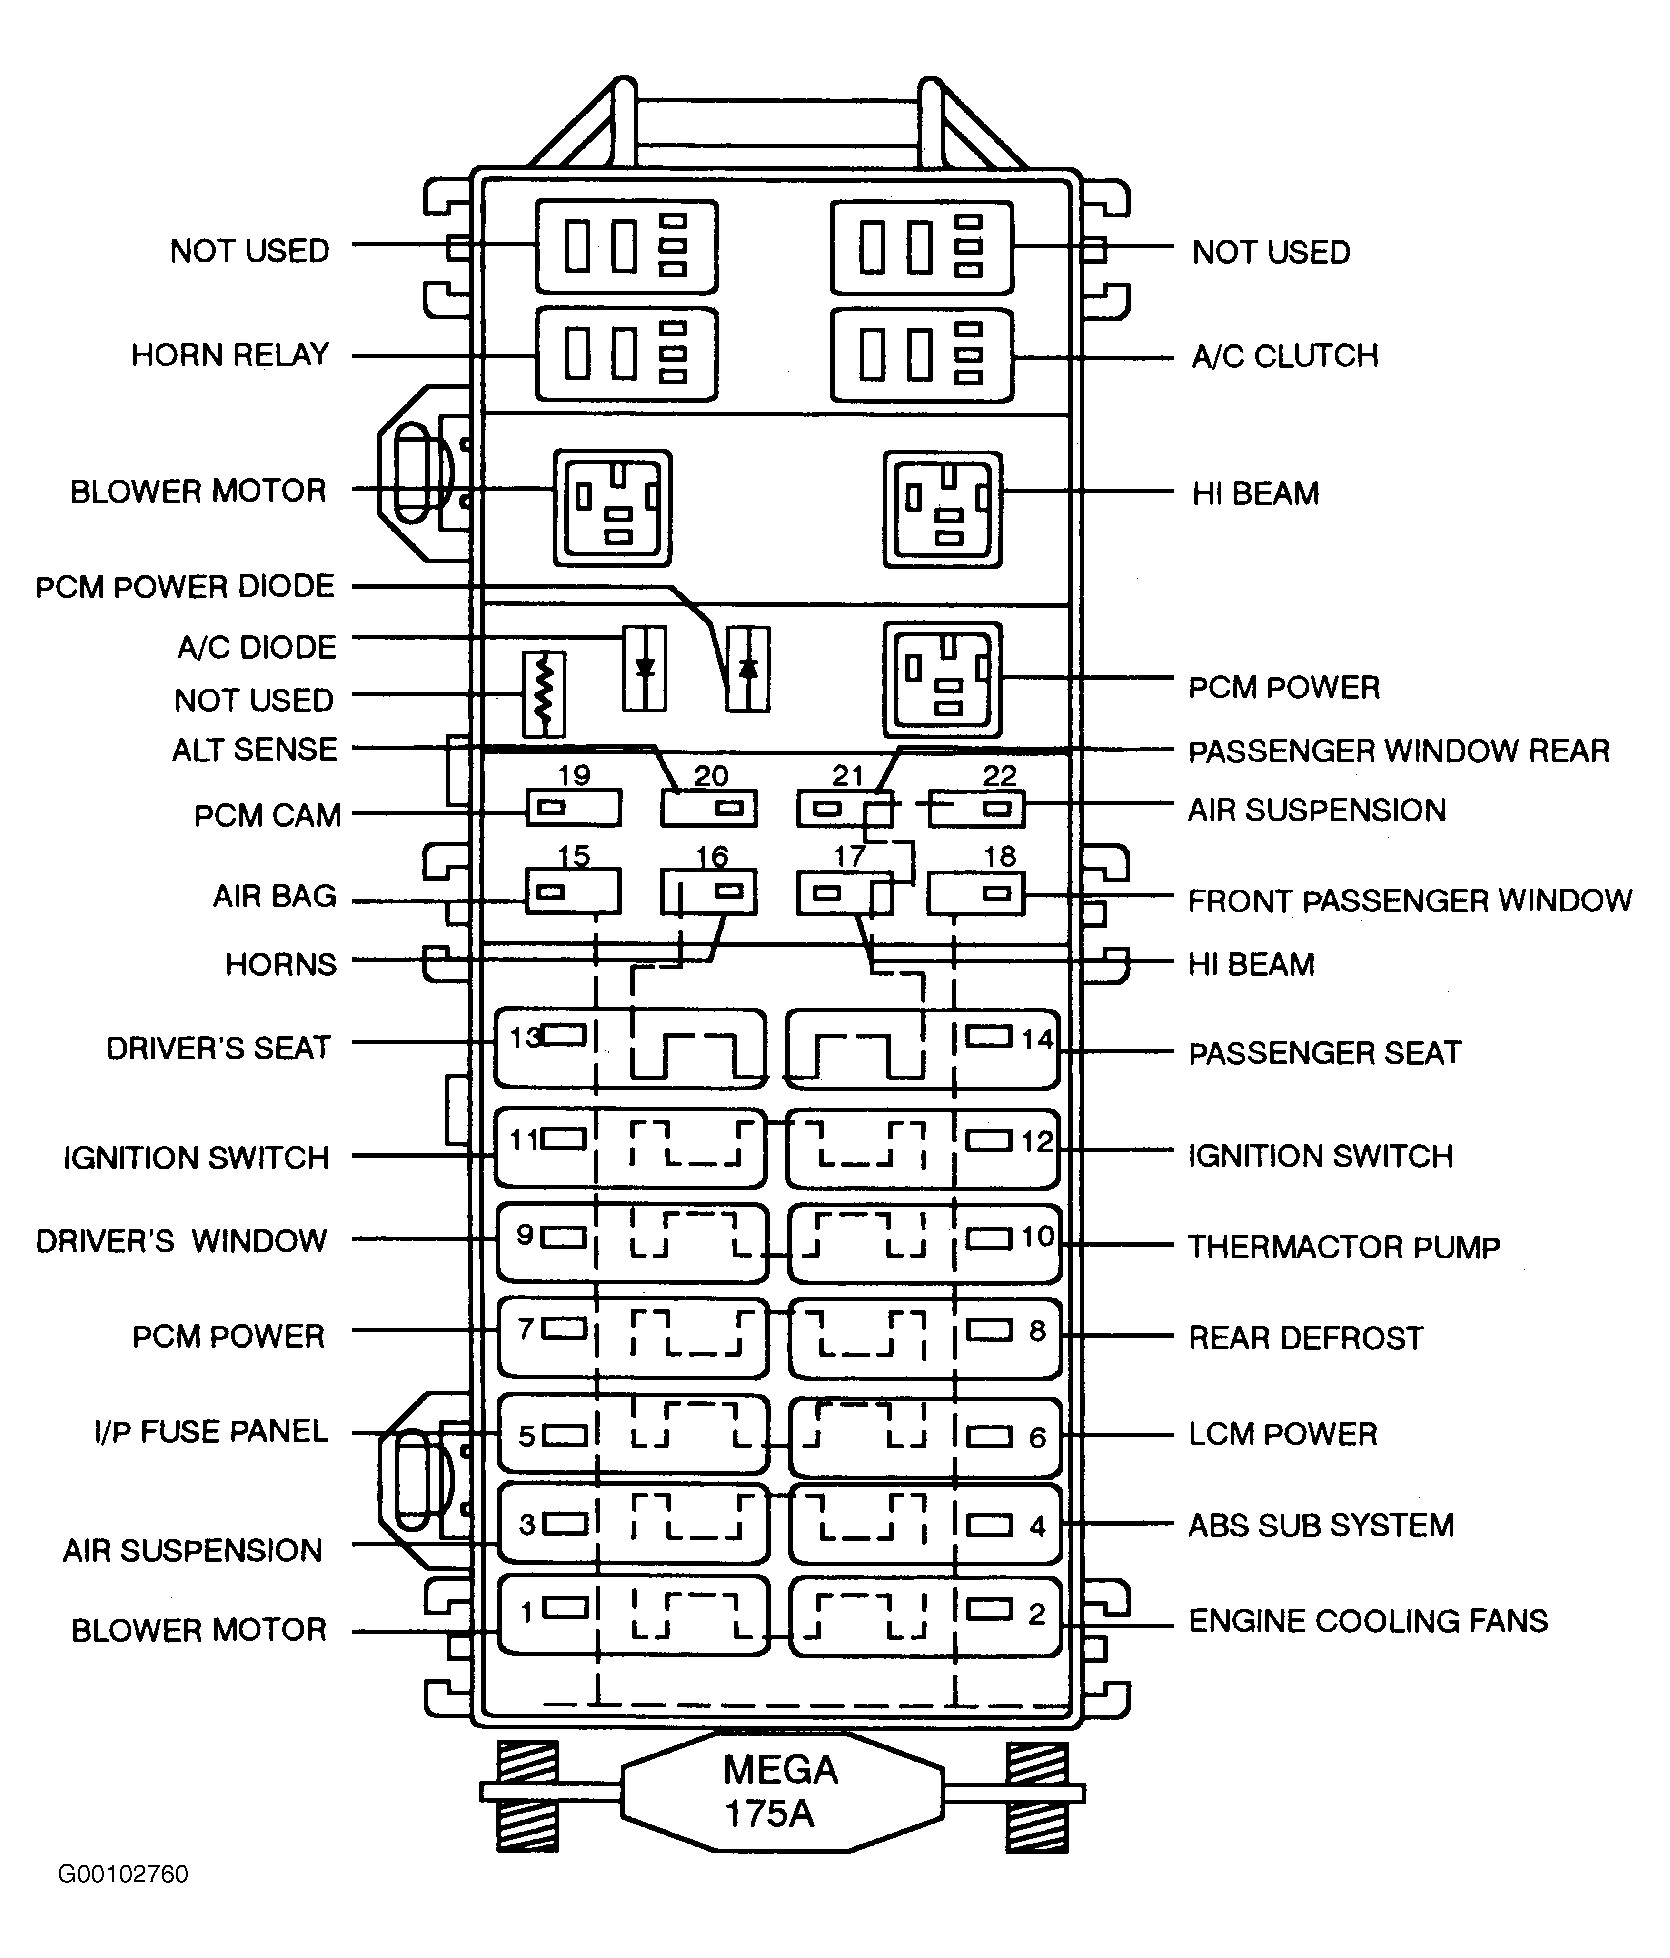 1997 lincoln town car fuse diagram. Black Bedroom Furniture Sets. Home Design Ideas